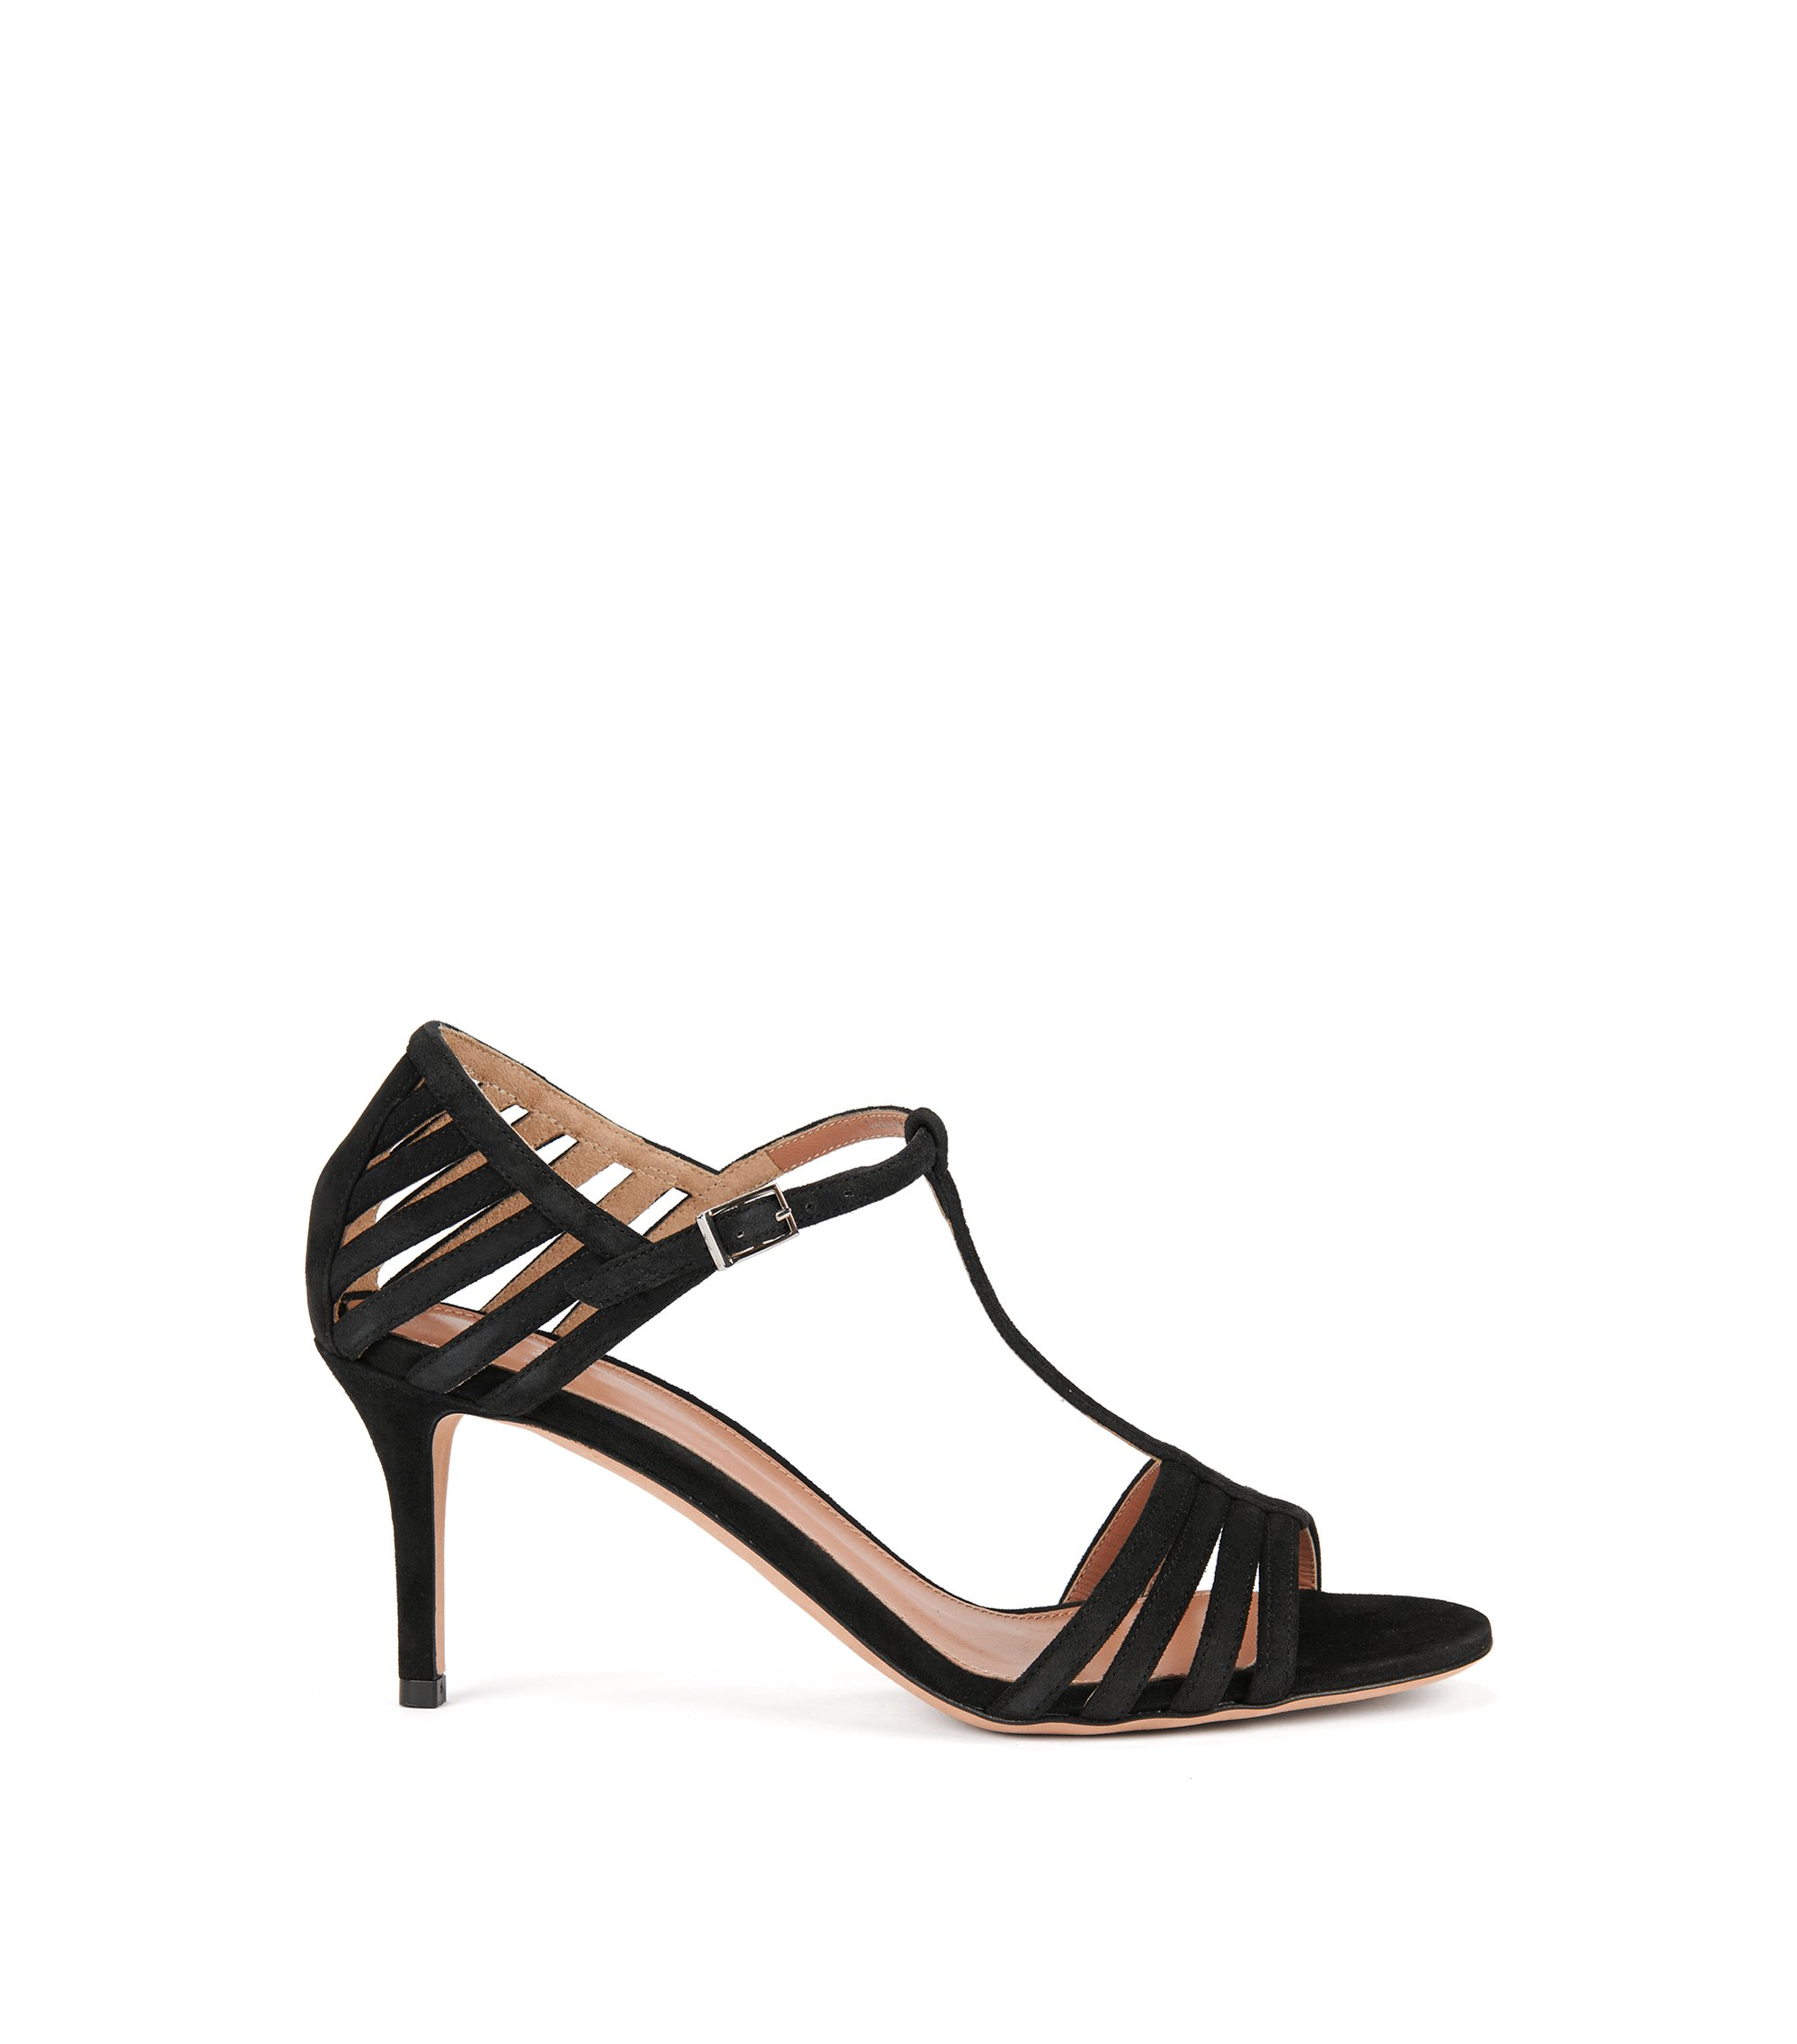 Strappy sandals in Italian suede, Black